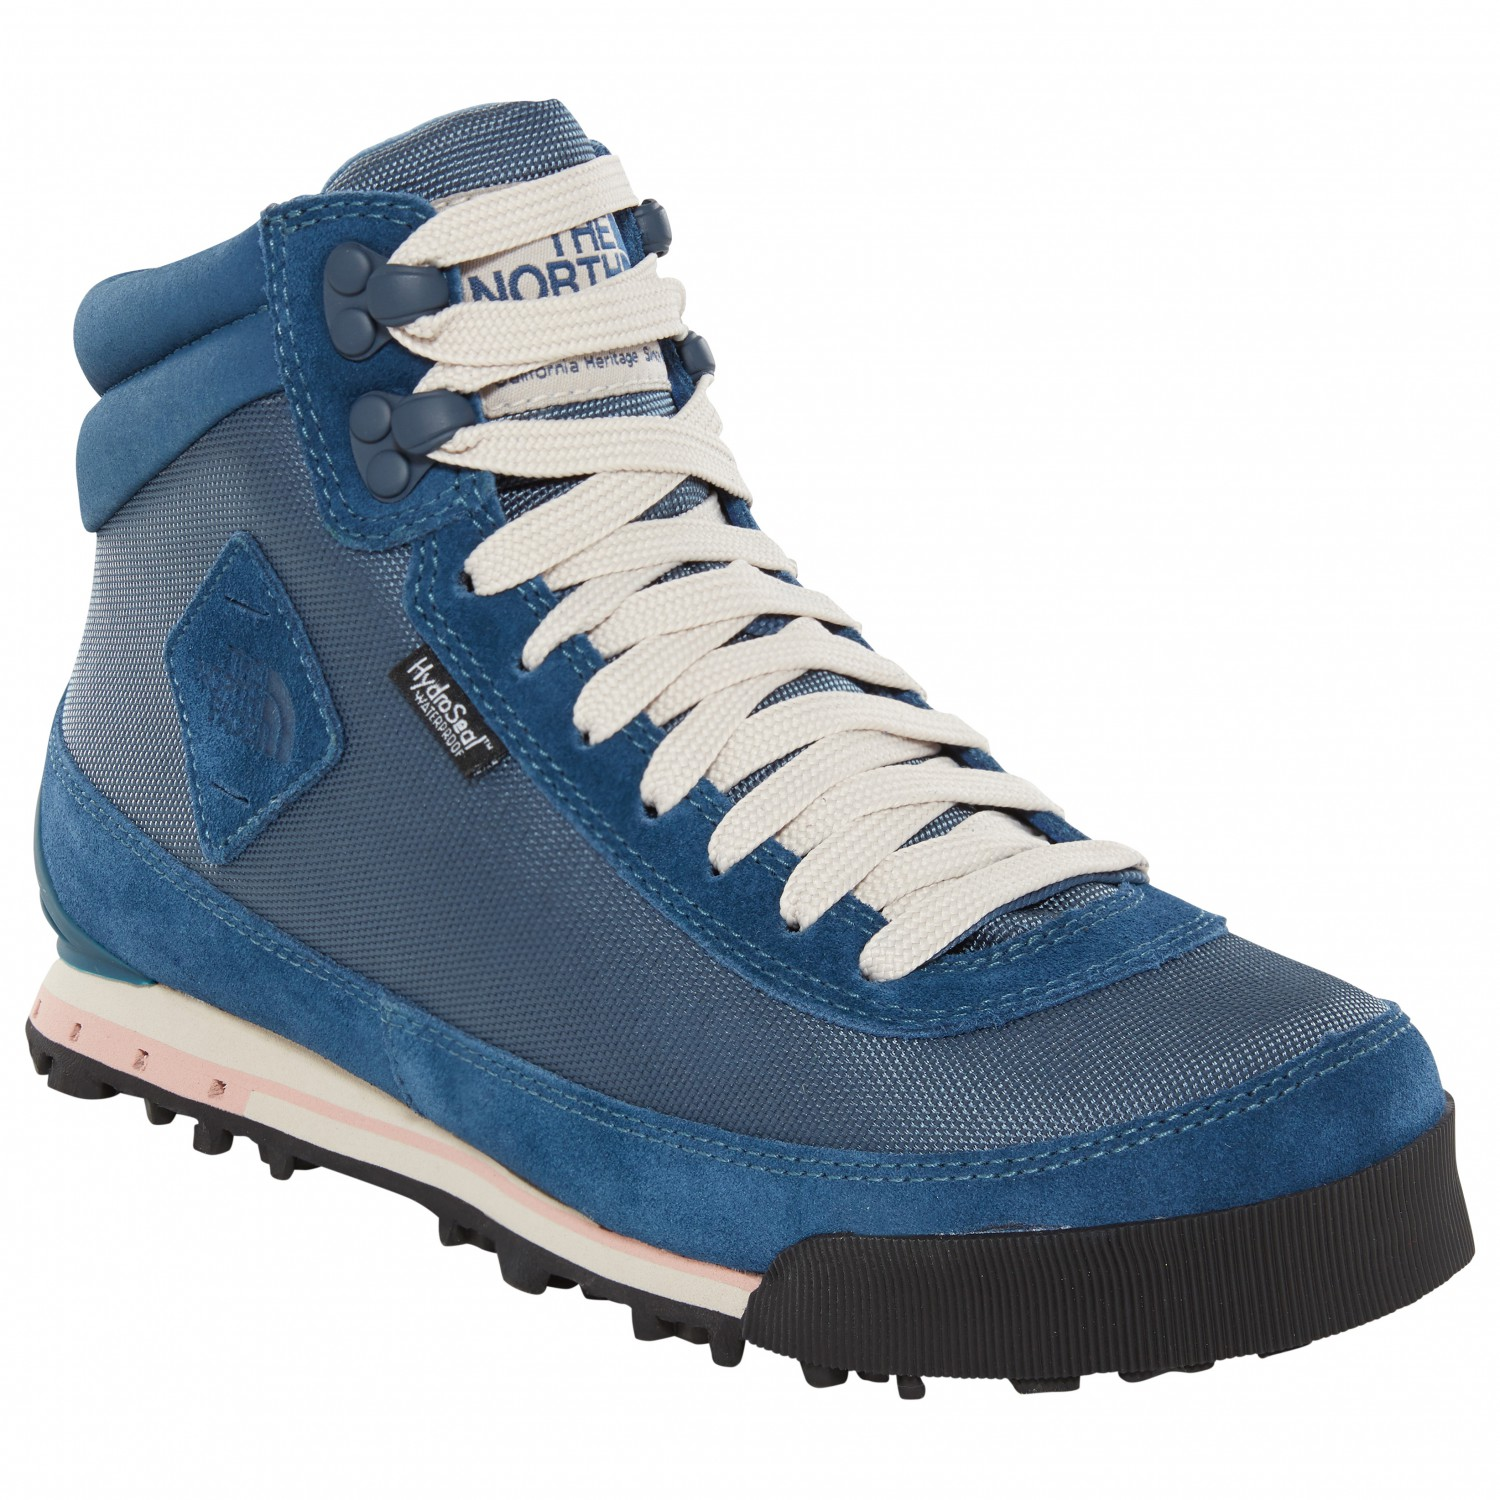 The North Face Back To Berkeley Boot 2 Boots Women S